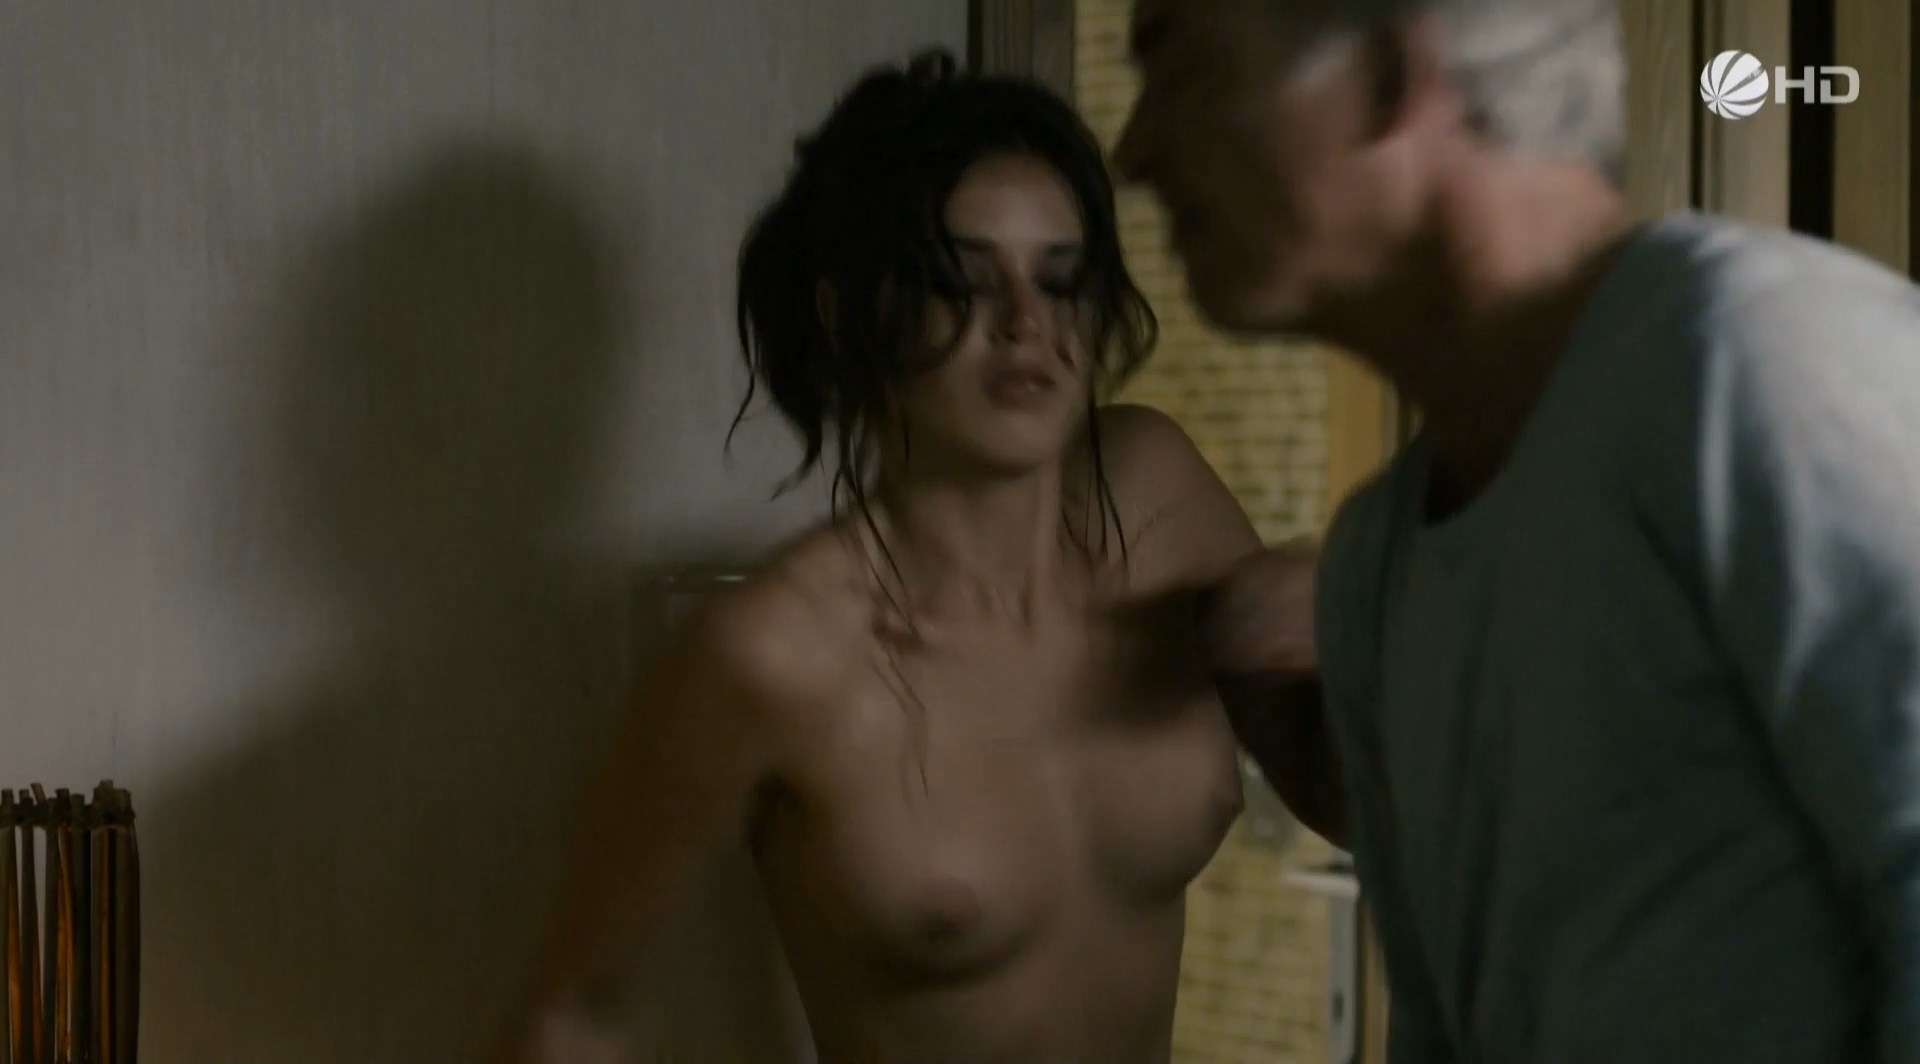 Anabel Alonso Topless materials for 2018 year » page 45 » celebs nude video